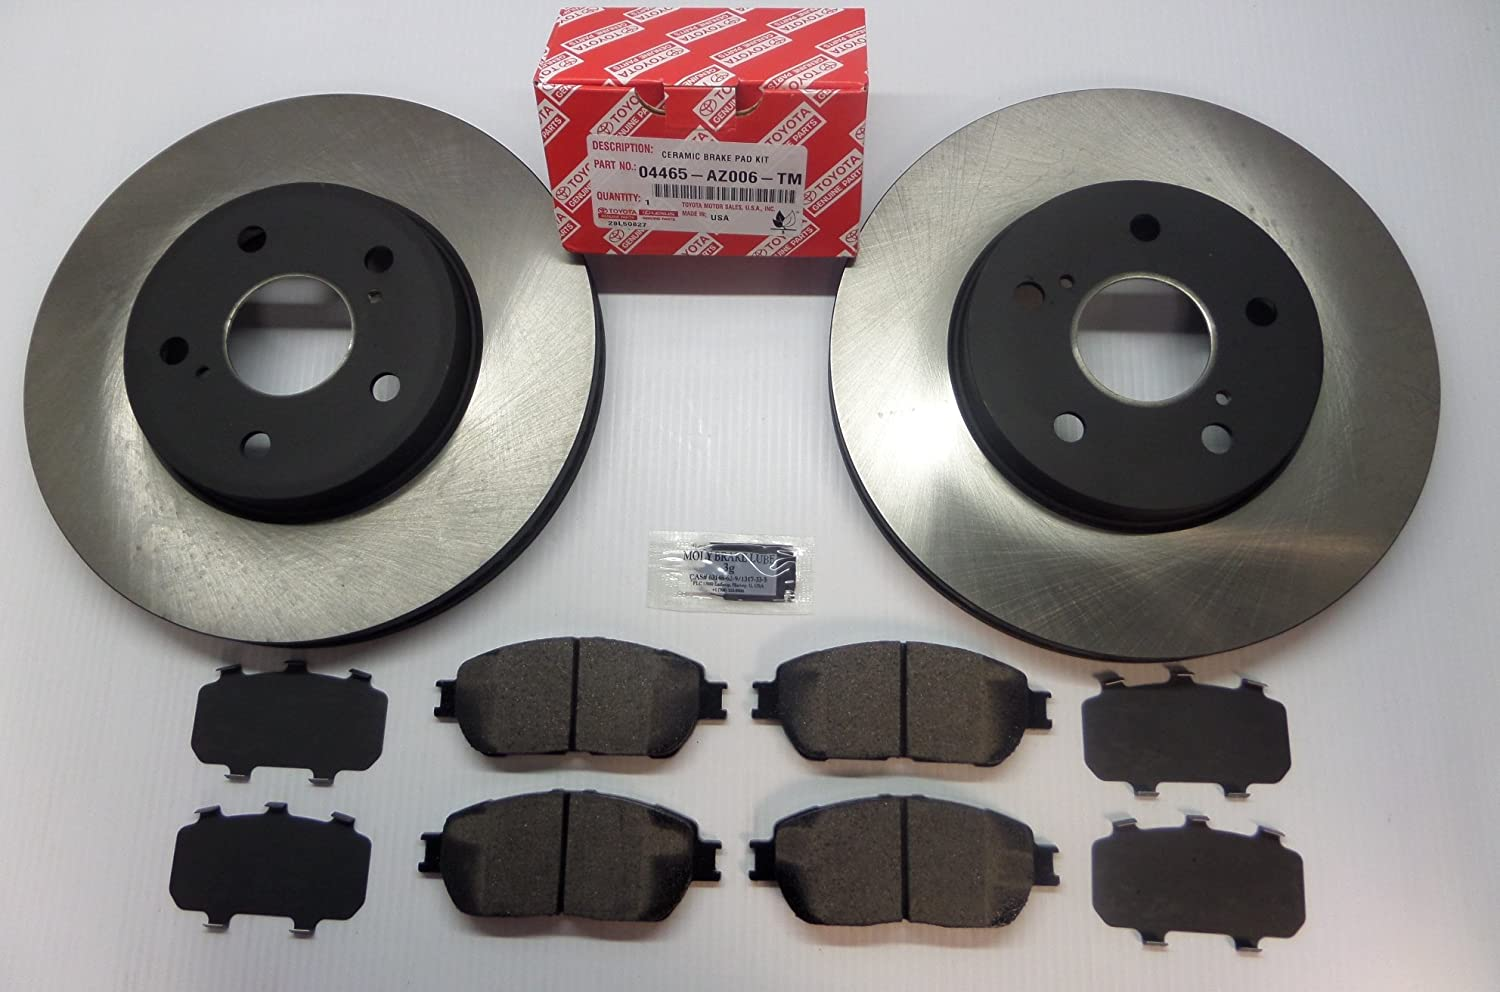 08 09 10 Fit Toyota Sienna See Desc. OE Replacement Rotors w//Ceramic Pads F+R